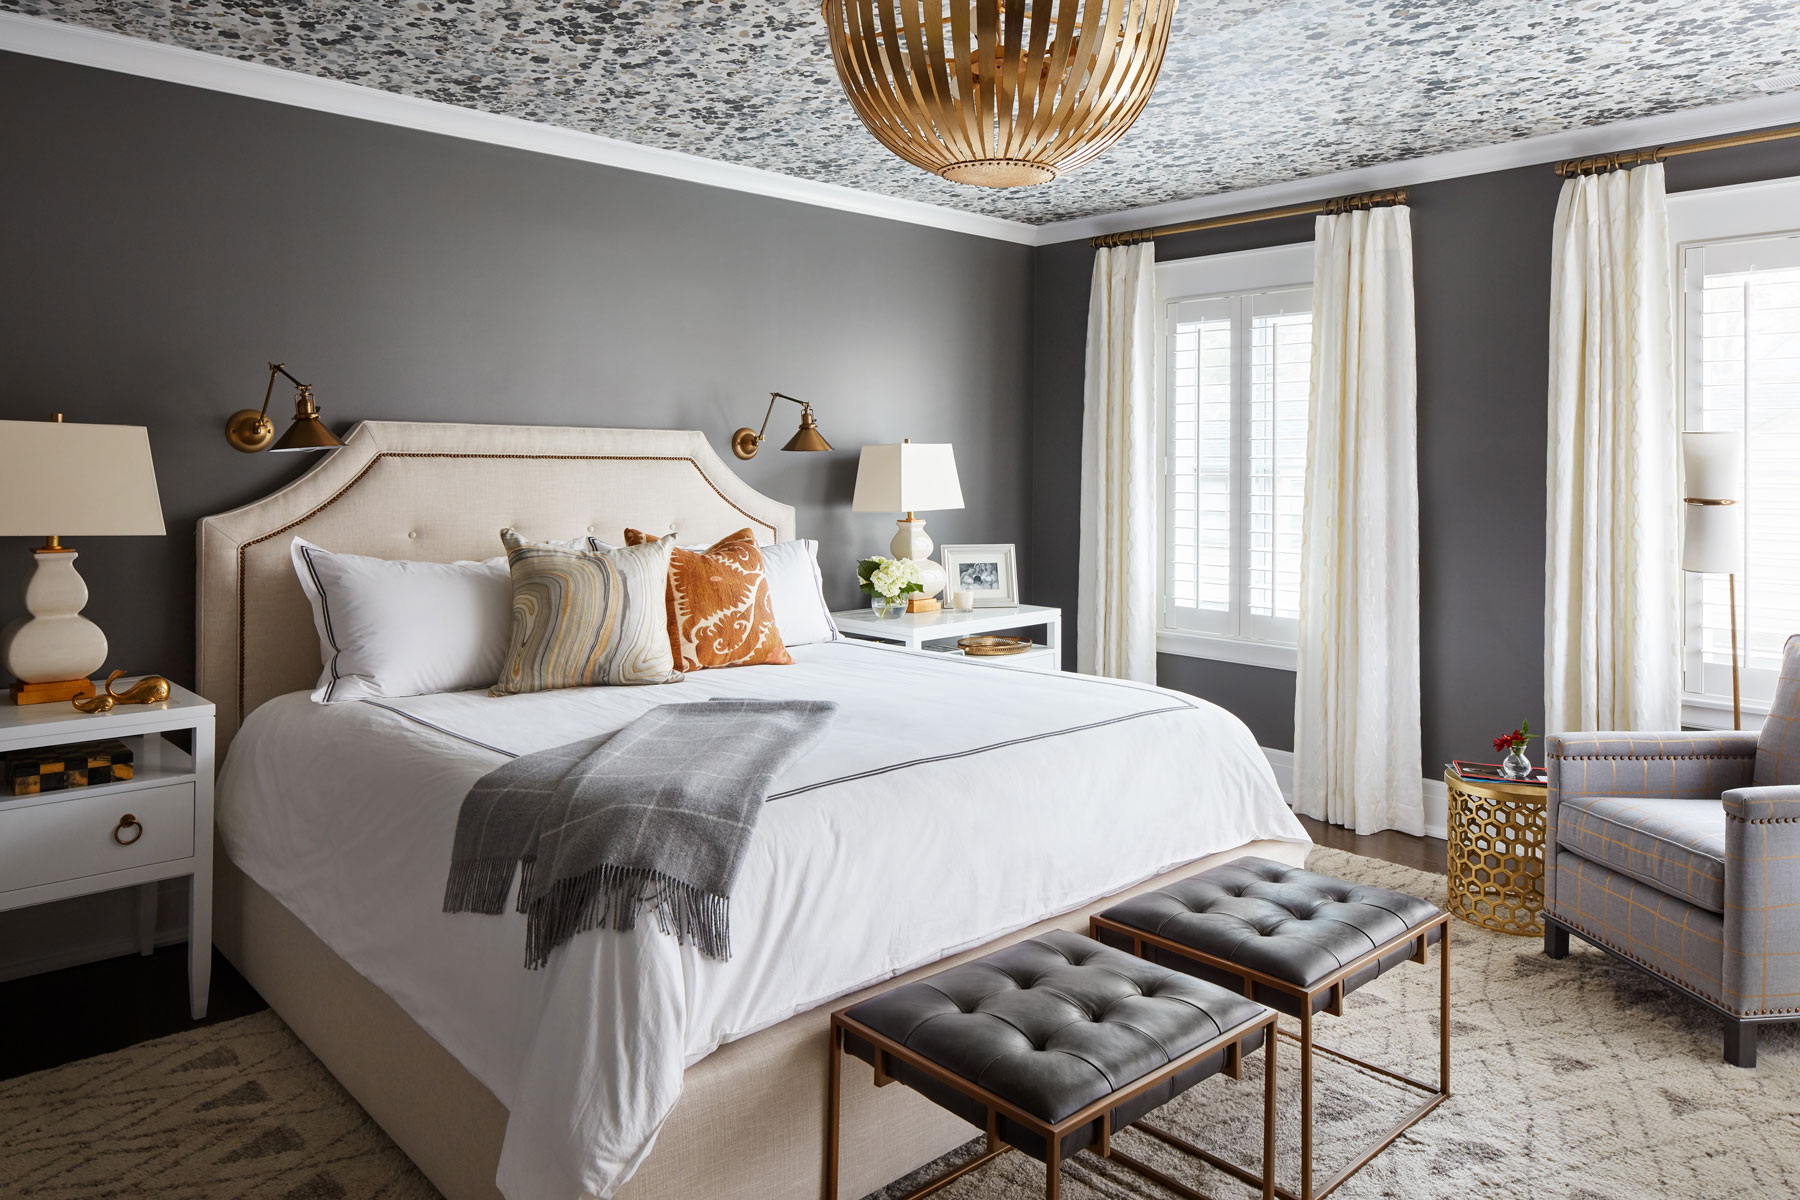 Neutral furnishings help balance the surrounding deep colors, while flashes of gold help unite the room with the rest of the home and flowing white curtains keep it from feeling heavy and dark.